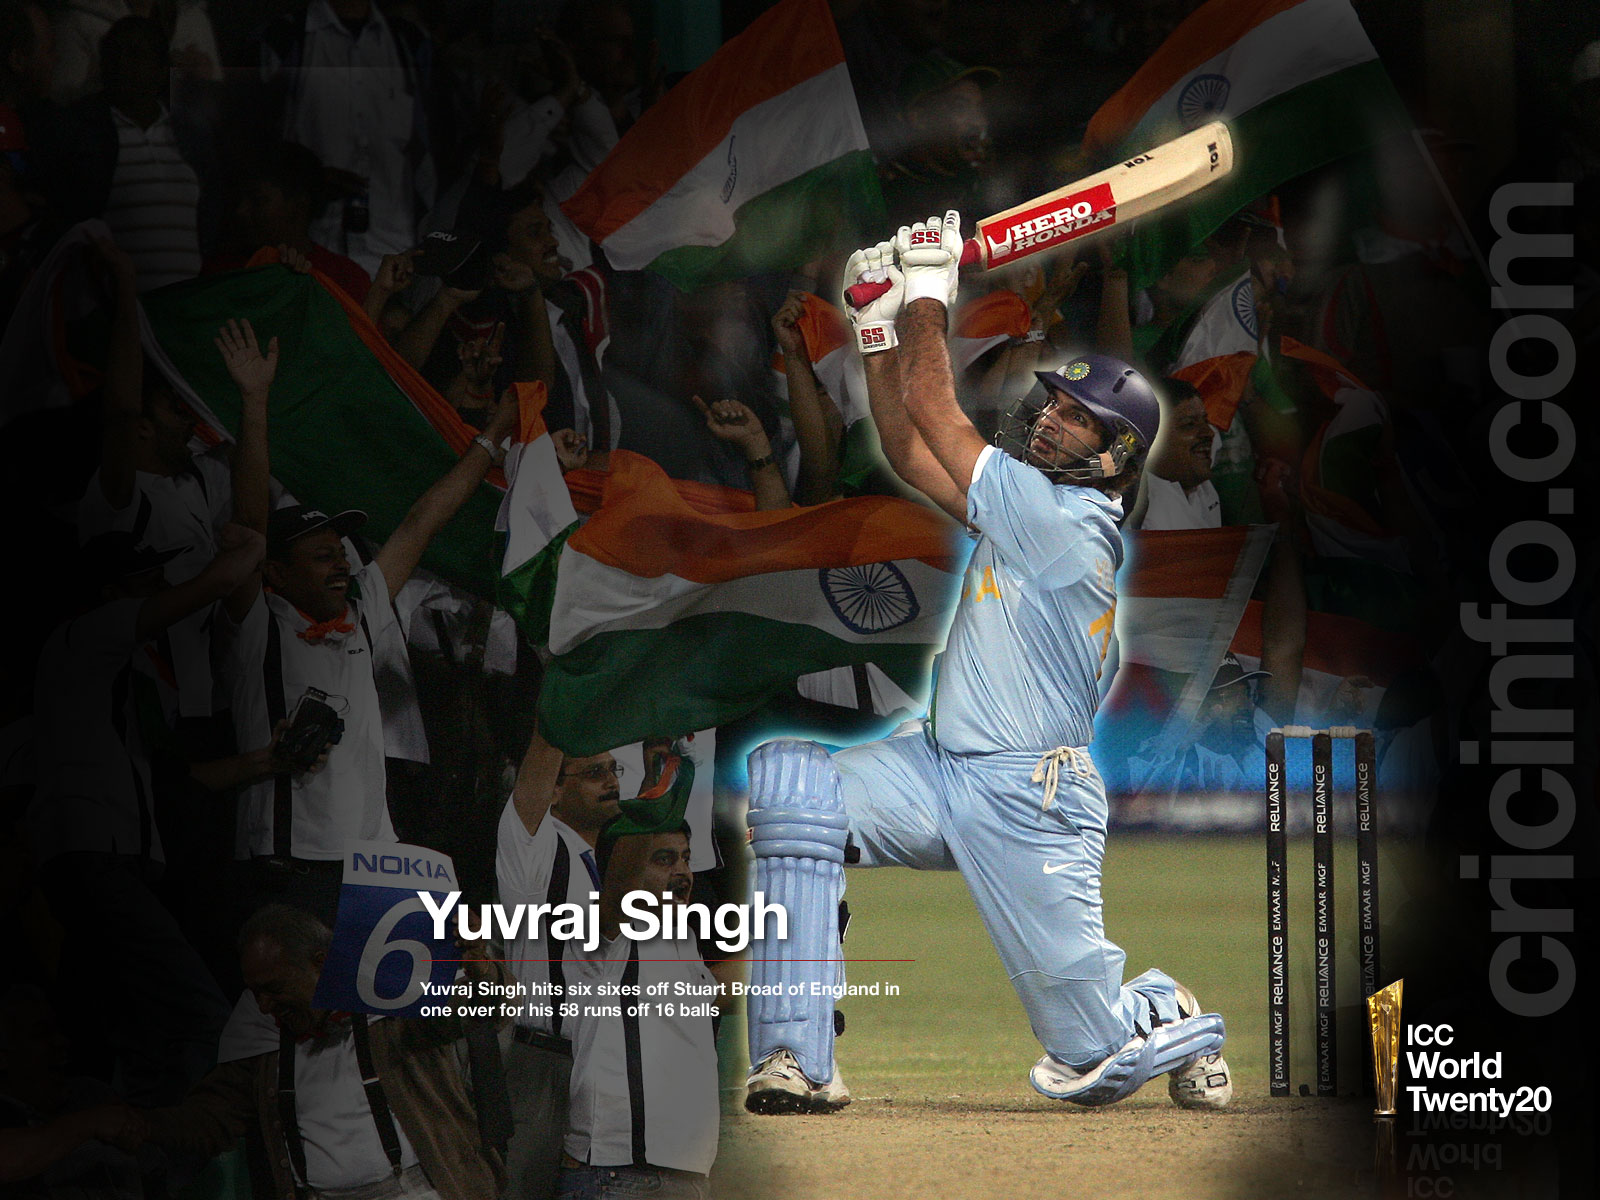 Yuvraj on his way to hit six sixes in an over